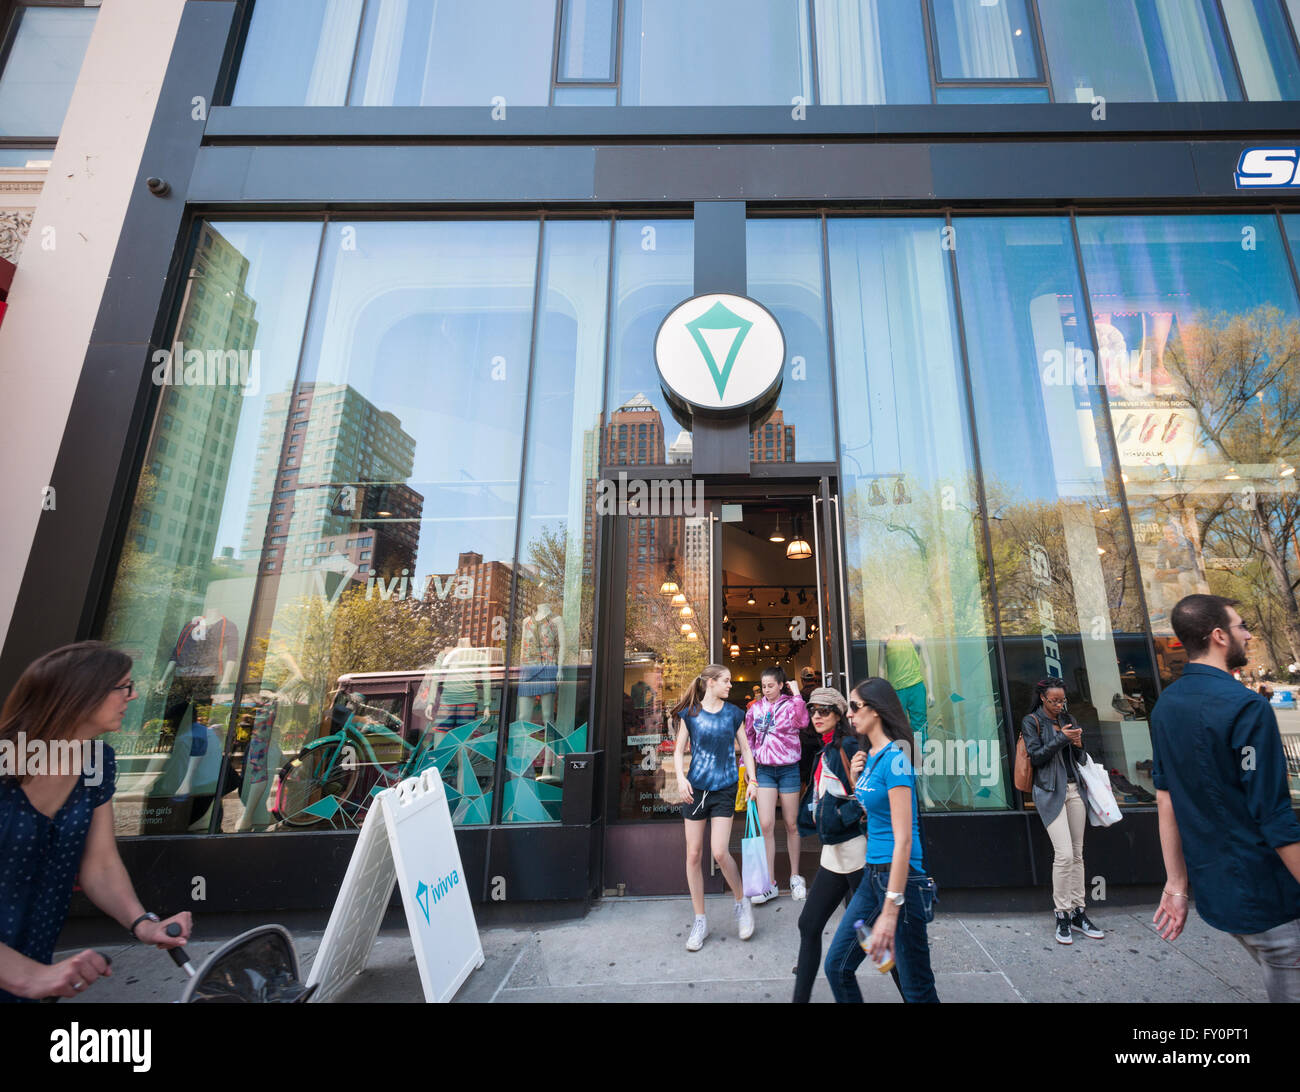 An Ivivva store, a brand of Lululemon Athletica geared toward young girls in Union Square in New York on Sunday, - Stock Image